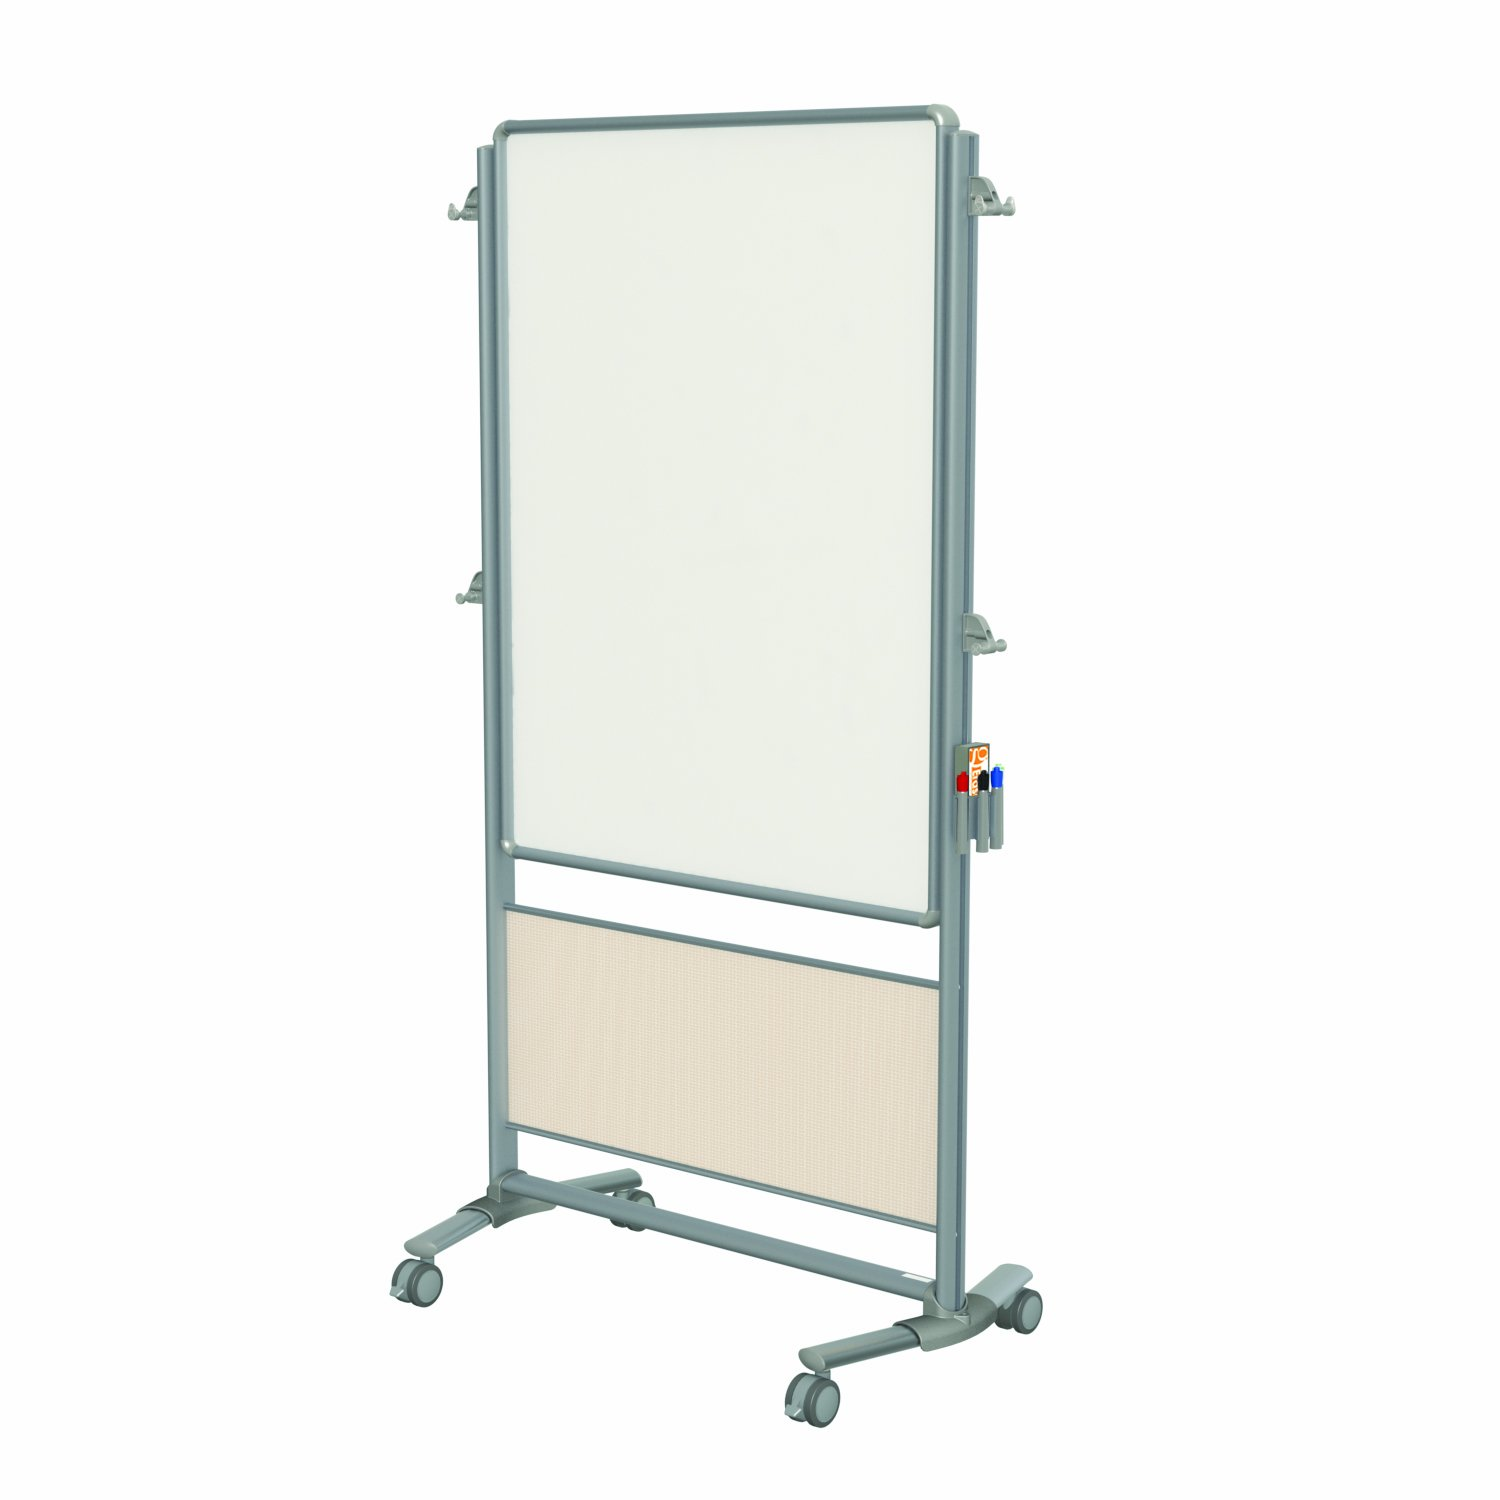 Ghent 76-1/8 x 40-3/8 Inches Nexus Easel, Double-Sided Mobile Porcelain Magnetic Whiteboard, Sand Mesh (NEX203ME-SM)